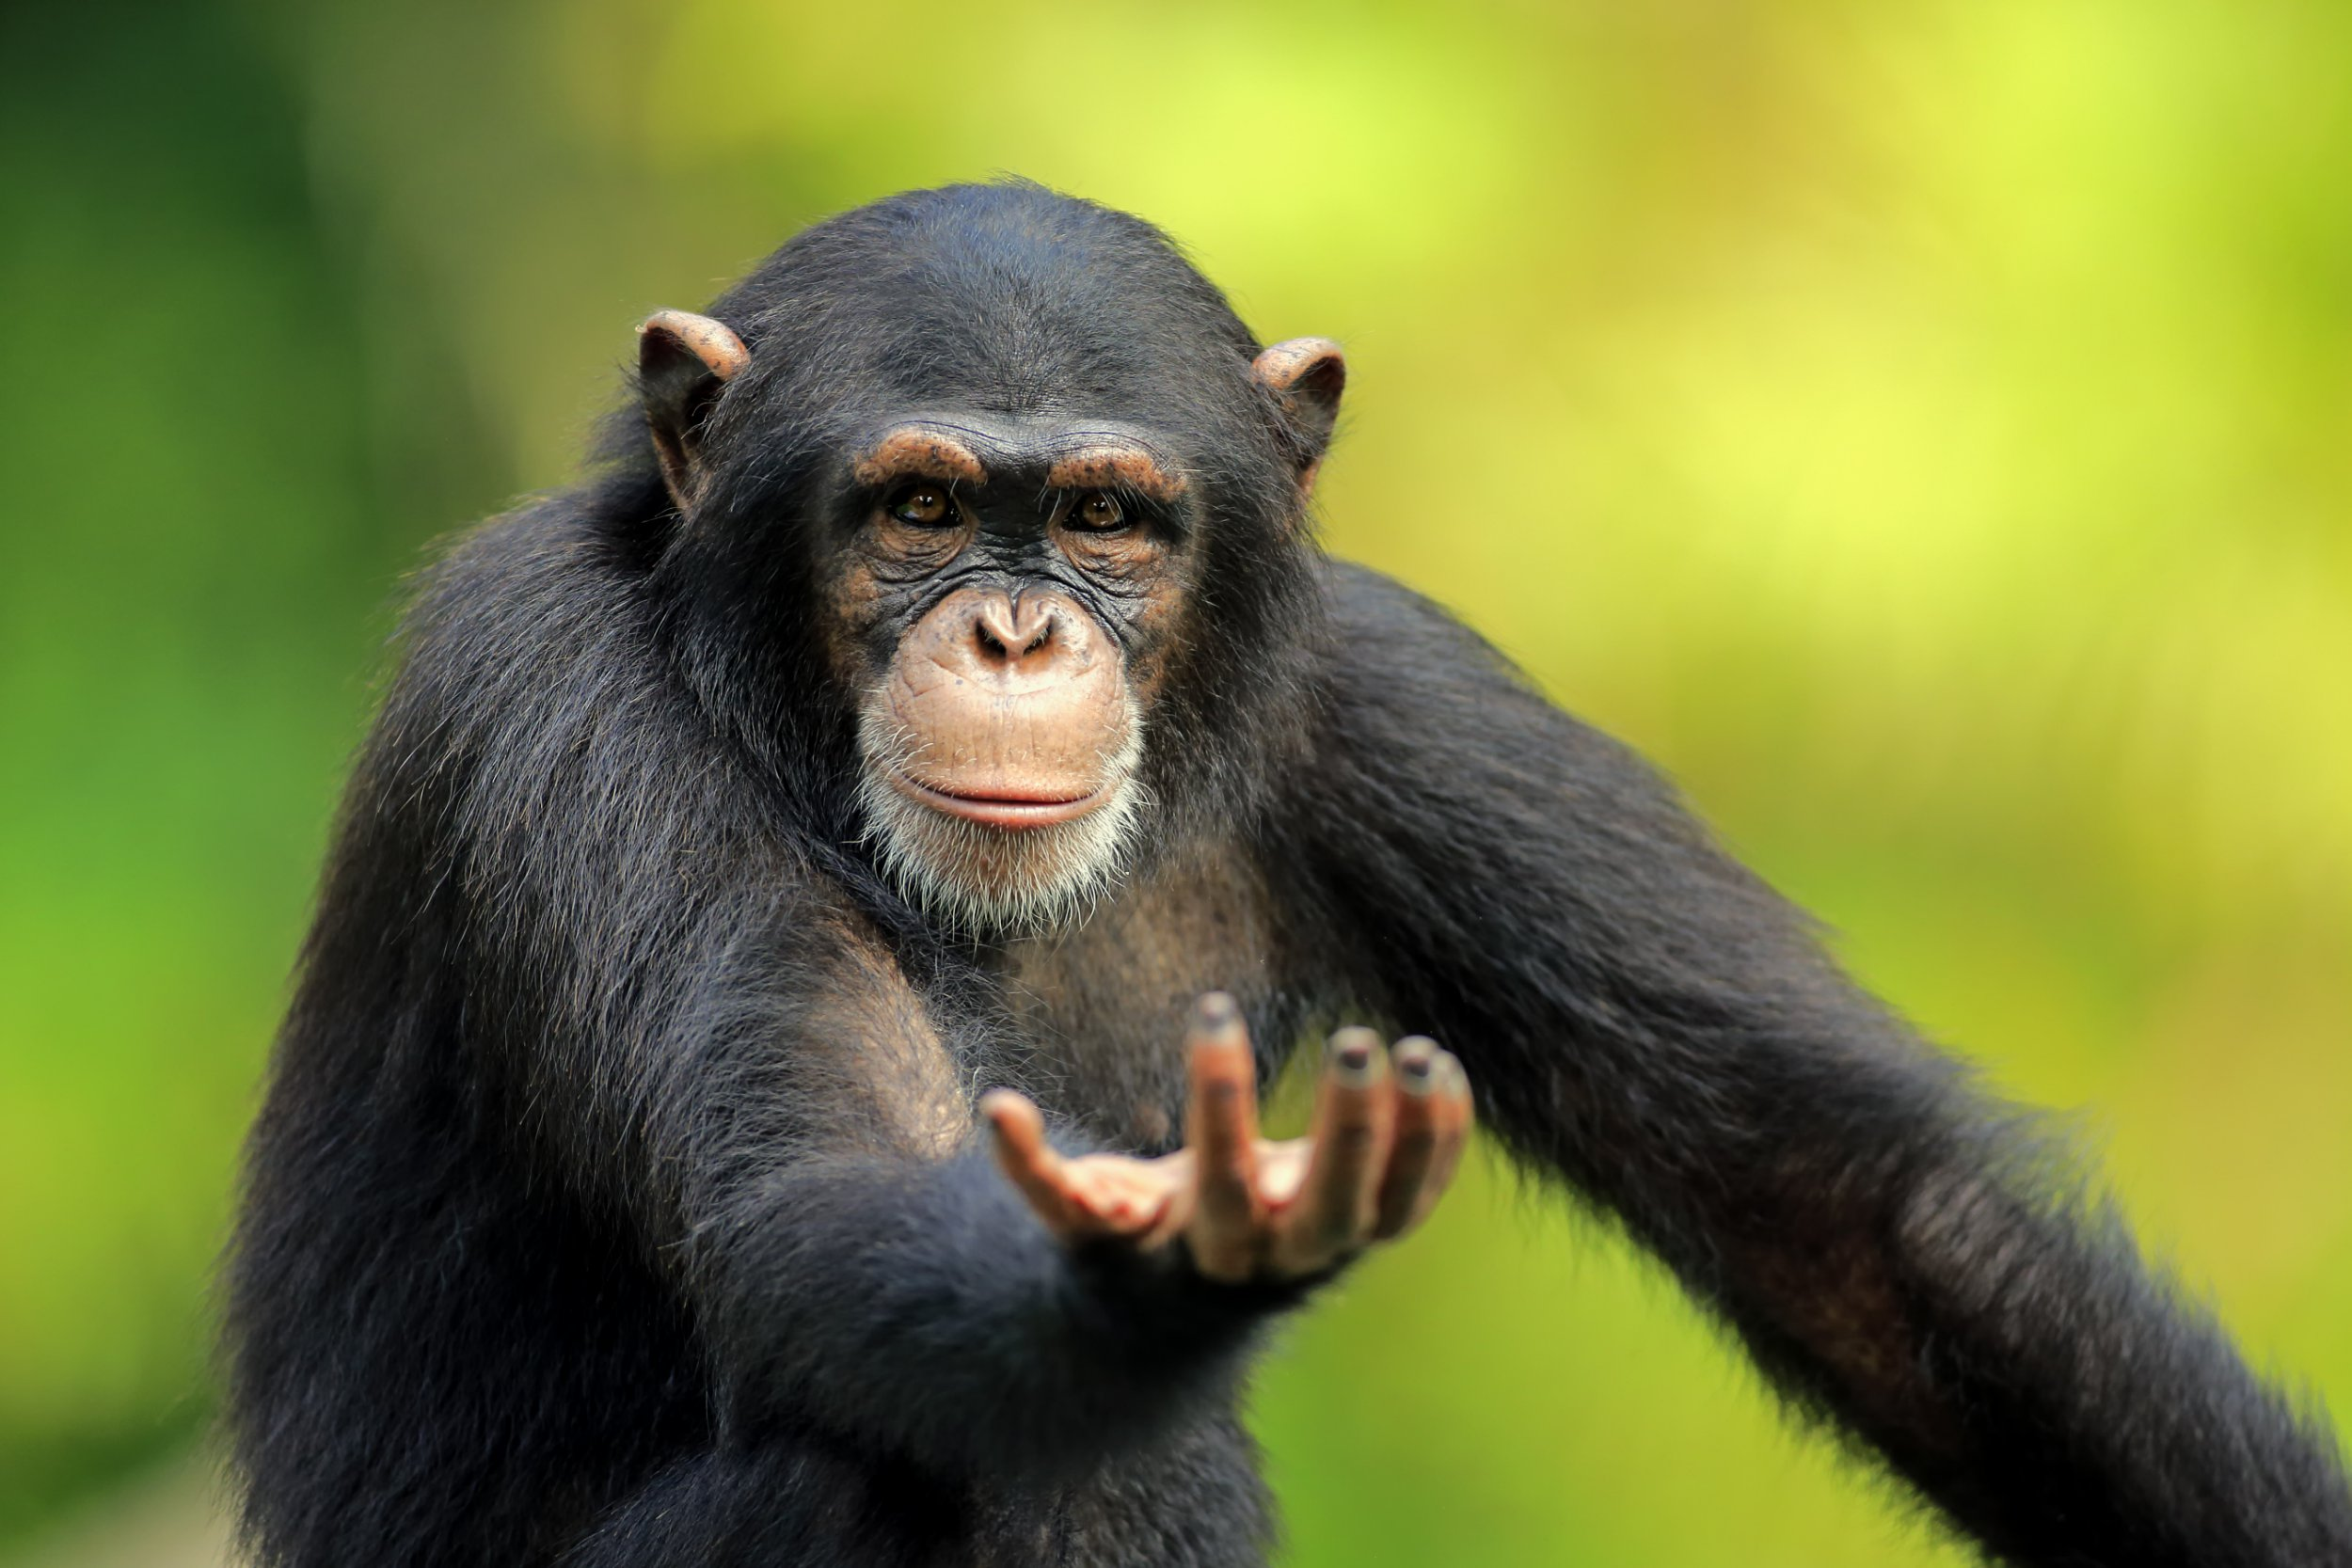 Chimps communicate using the same language rules as humans